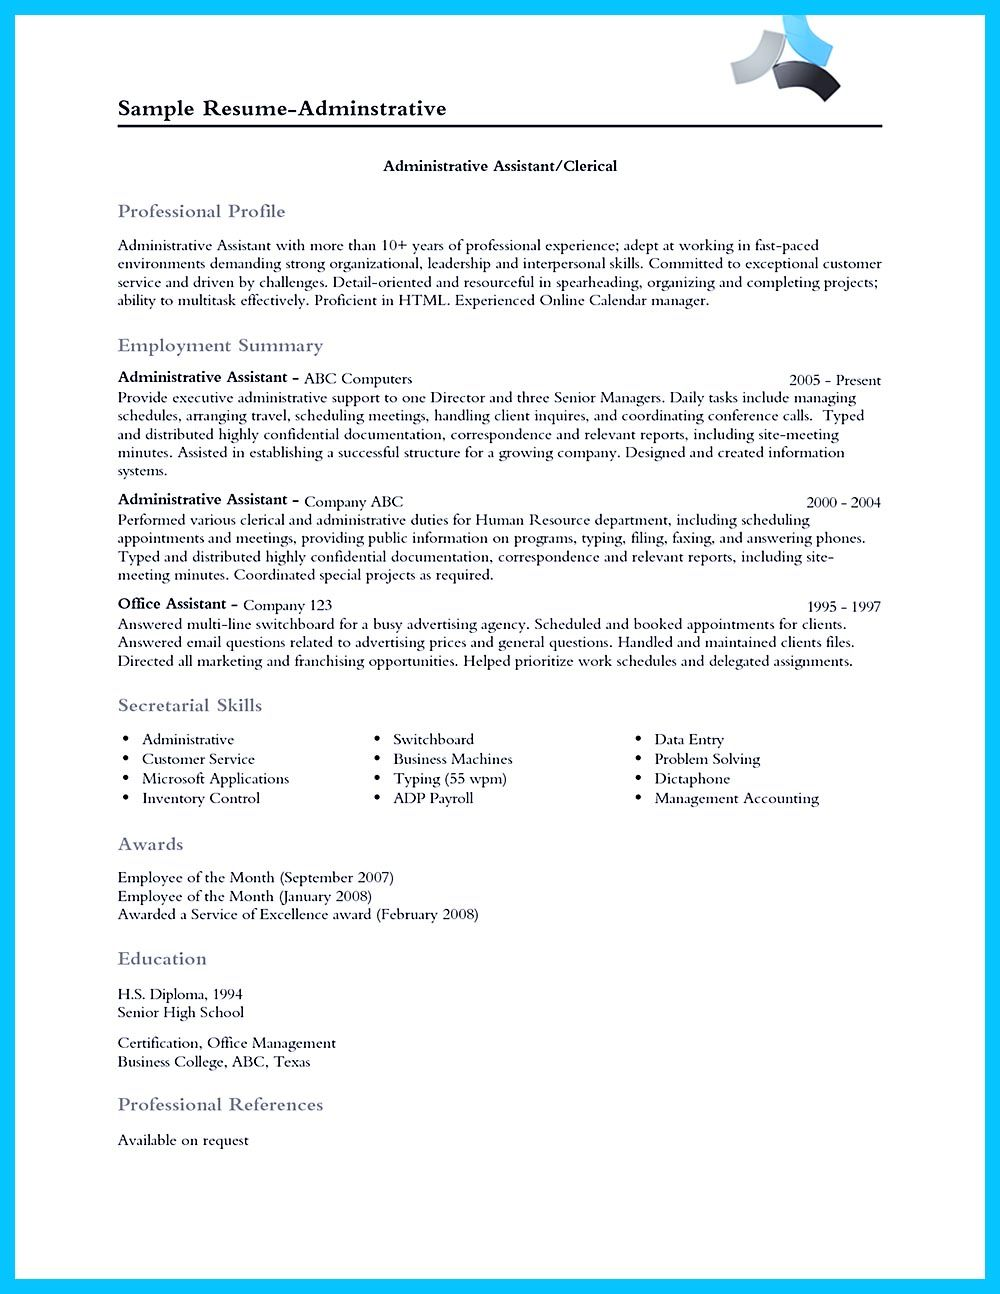 Sr Administrative Assistant Resume In Writing Entry Level Administrative Assistant Resume You Need